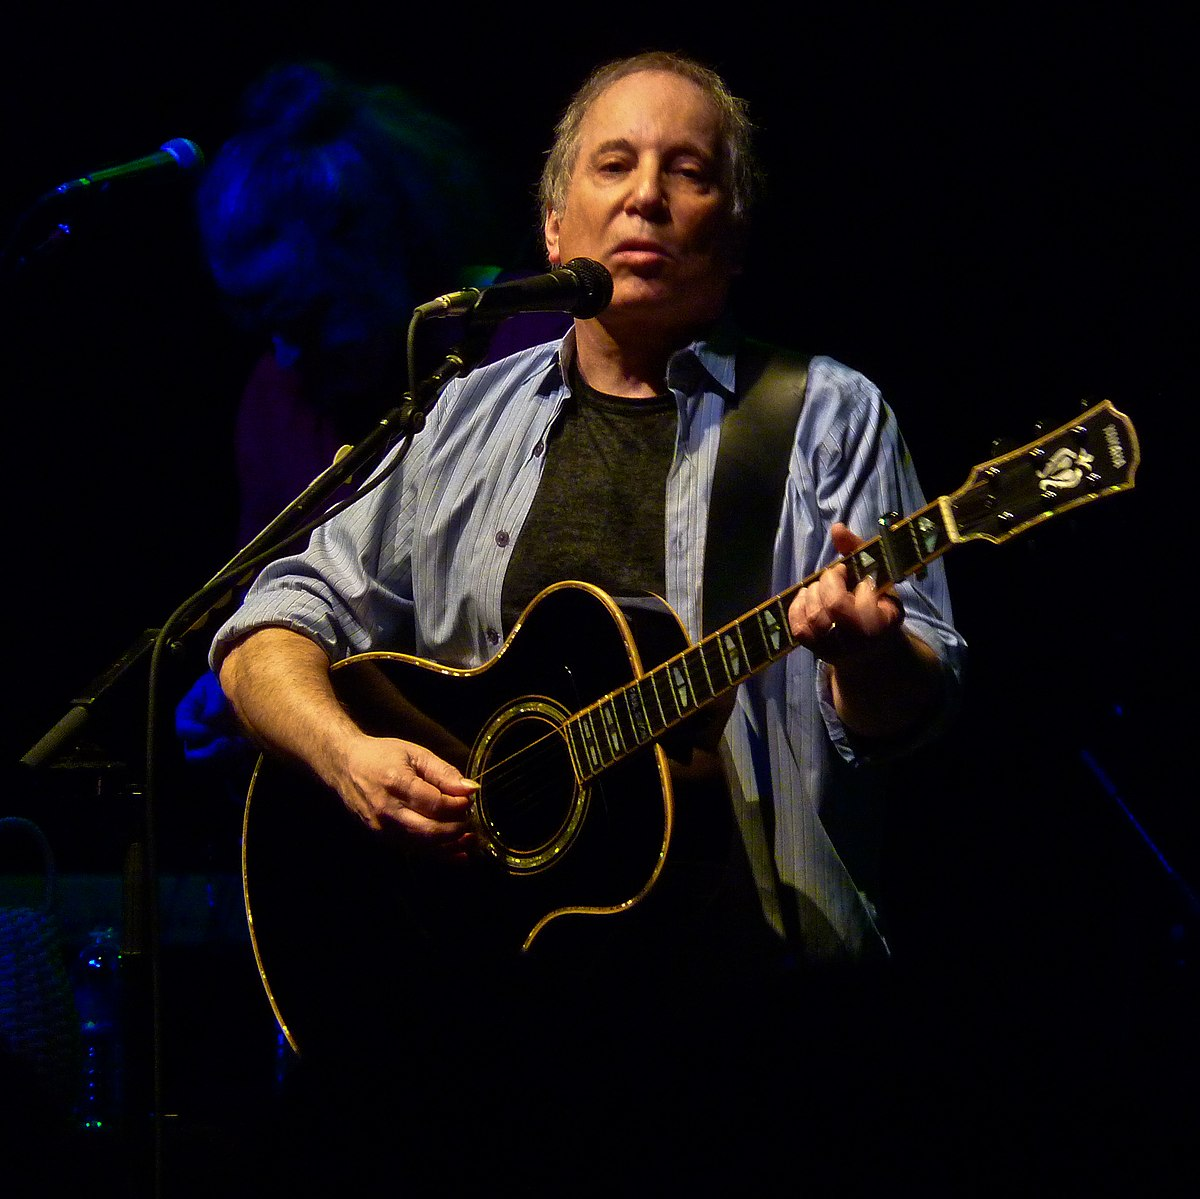 Paul simon wikipedia nvjuhfo Choice Image